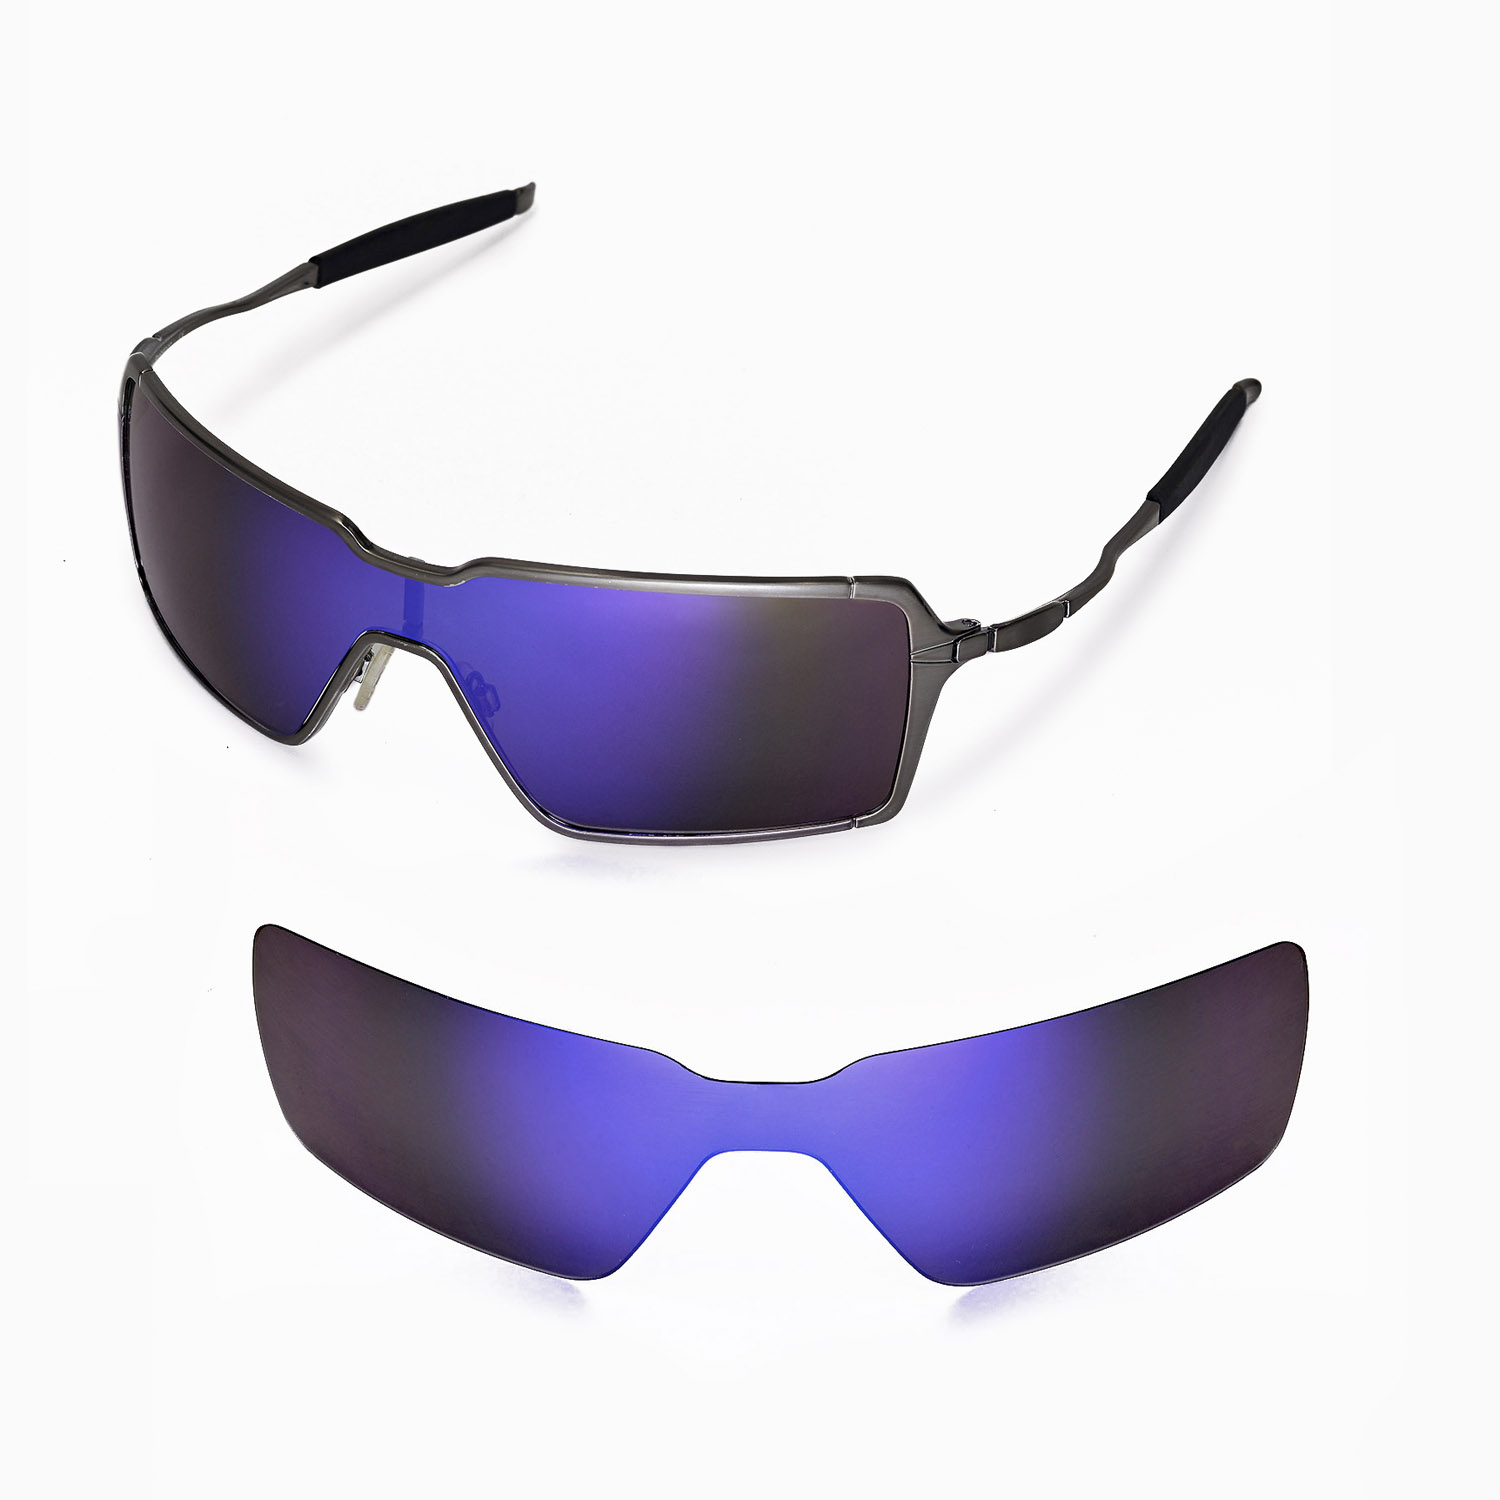 6754bf88c5 Walleva Replacement Lenses for Oakley Probation Sunglasses ...